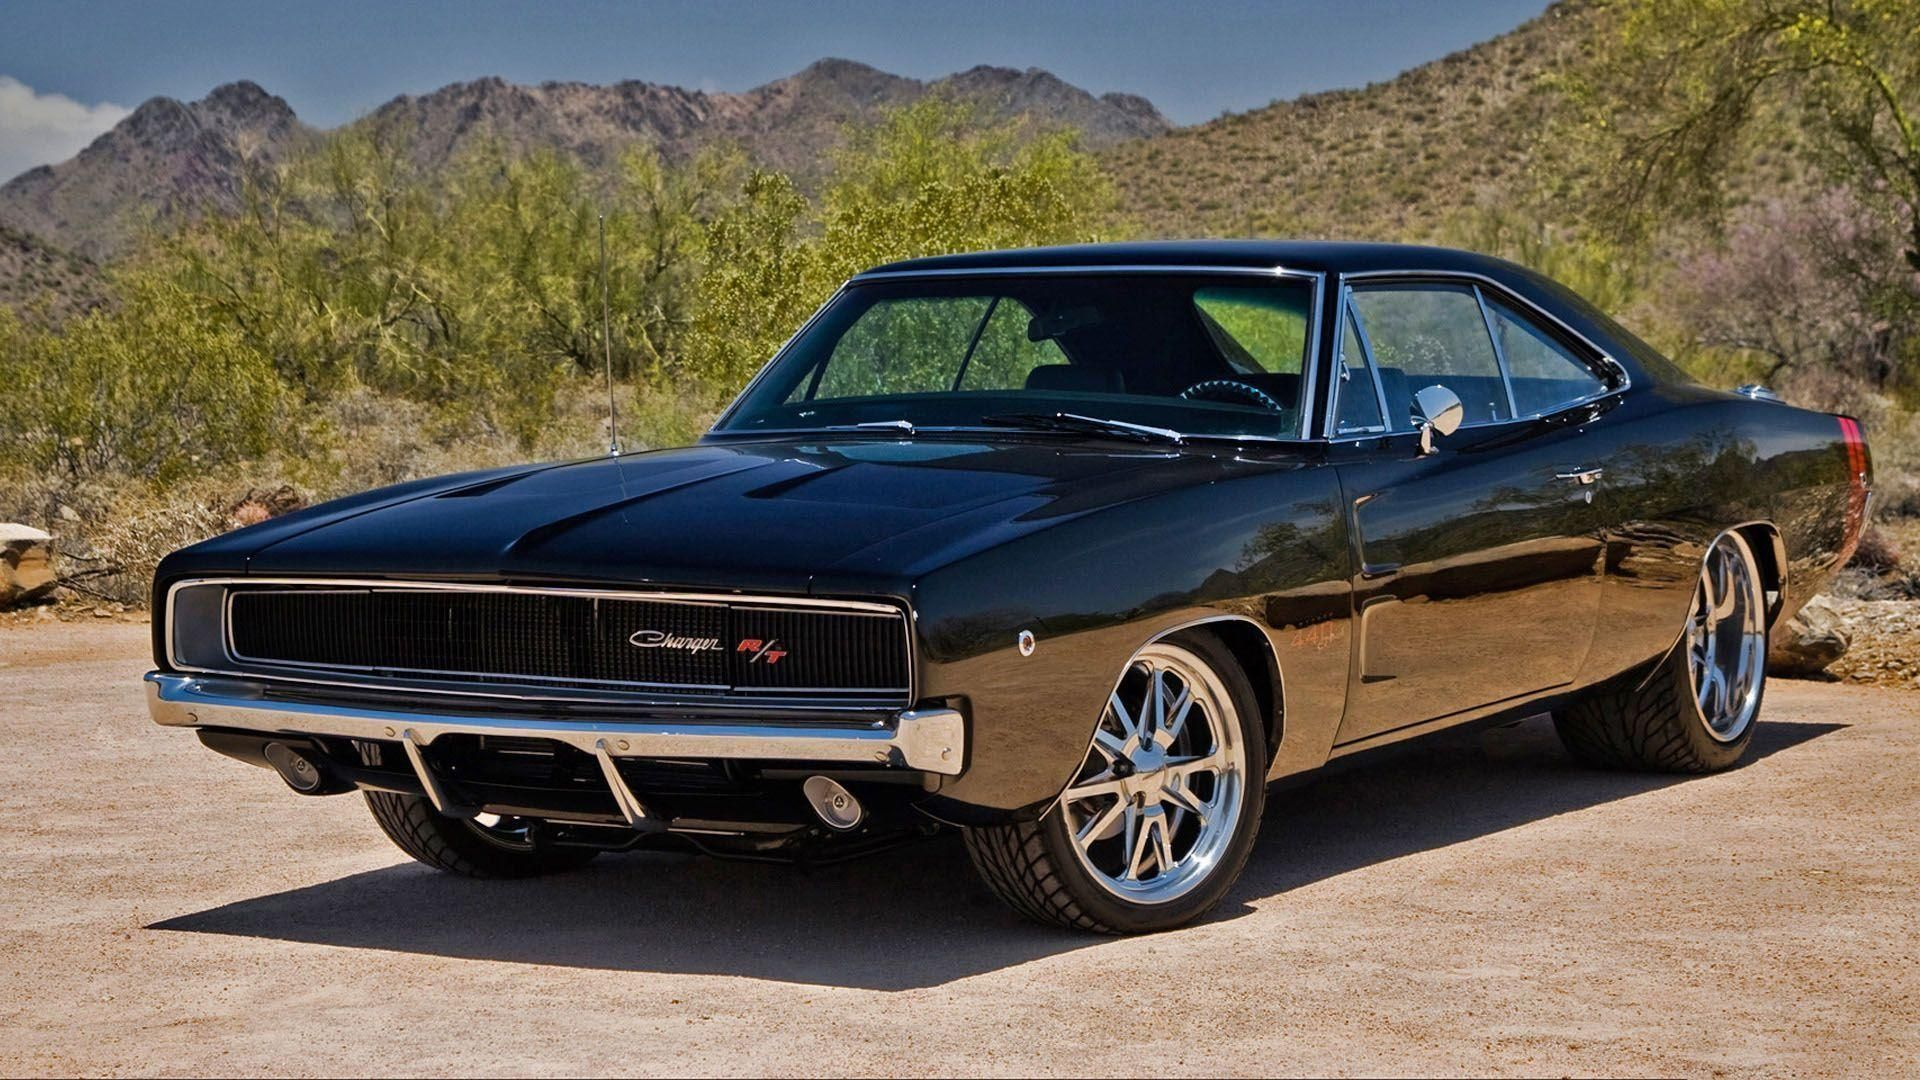 Image result for 78 dodge charger   Dodge Charger clic cars ...